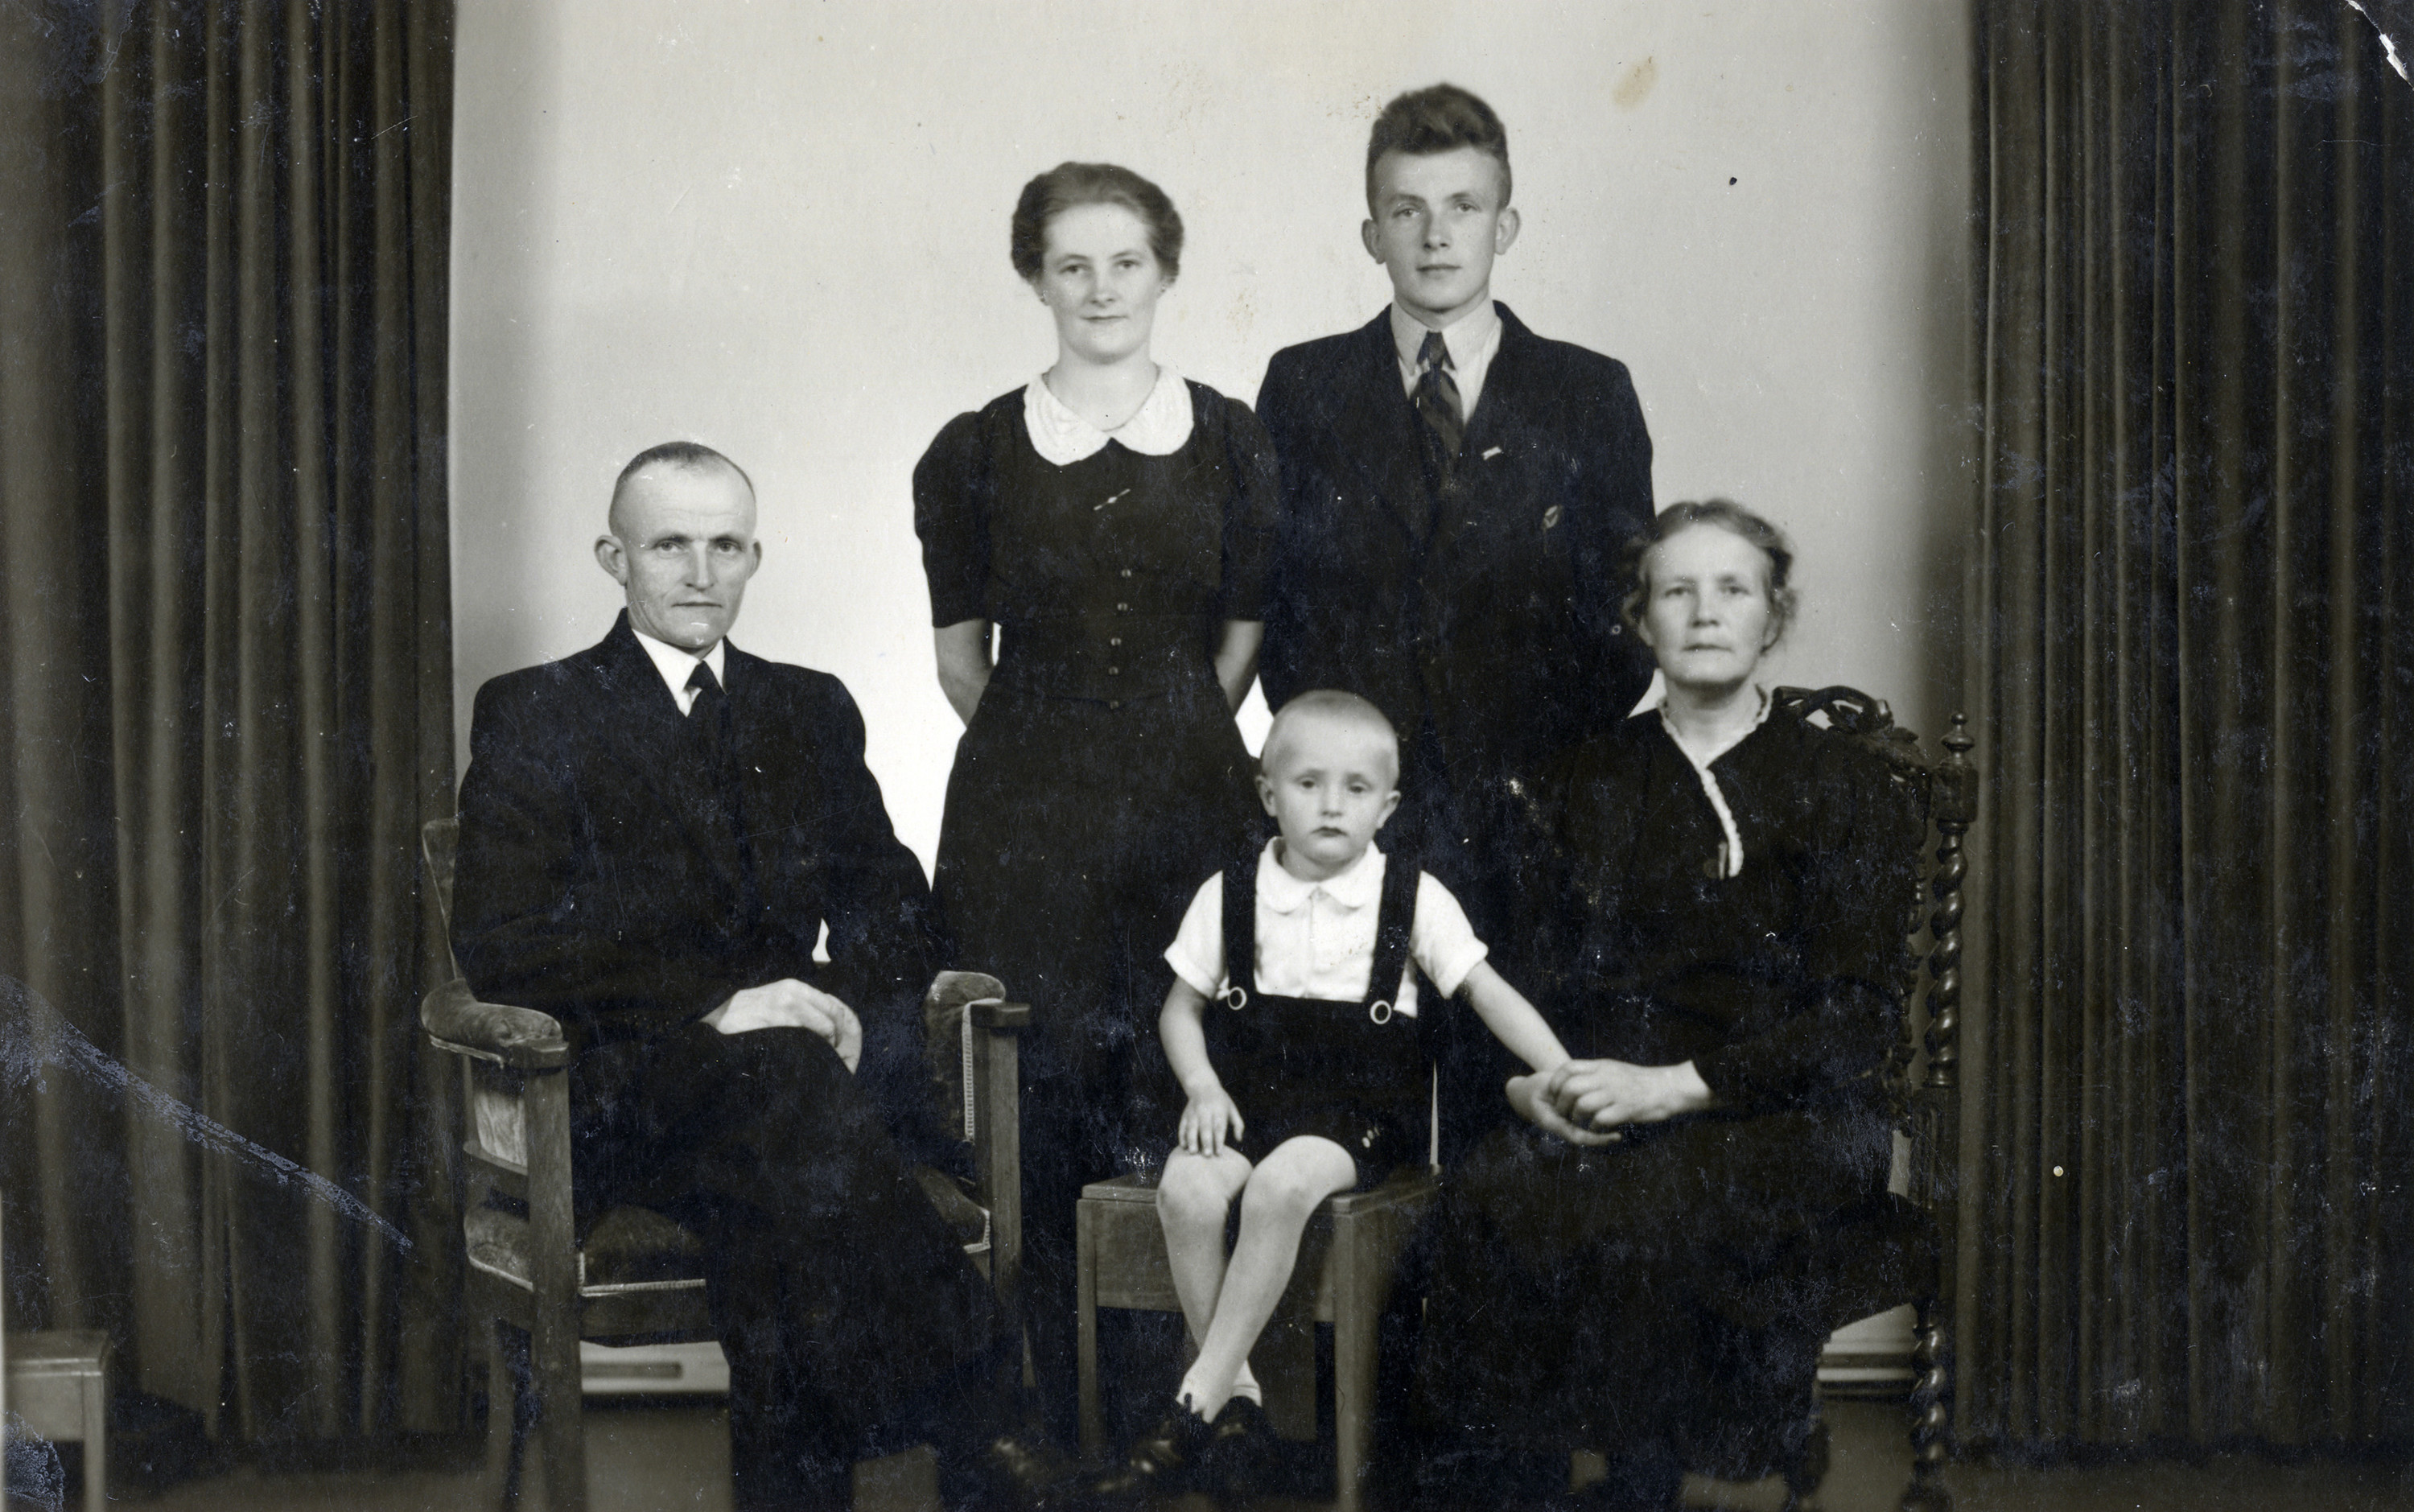 Postwar portrait of a Dutch rescuer family.  Pictured is the Rozema family.  The parents are seated far left and right; their daughter Sietski and son Yelke are standing in back, and Sietski's child is seated in front.